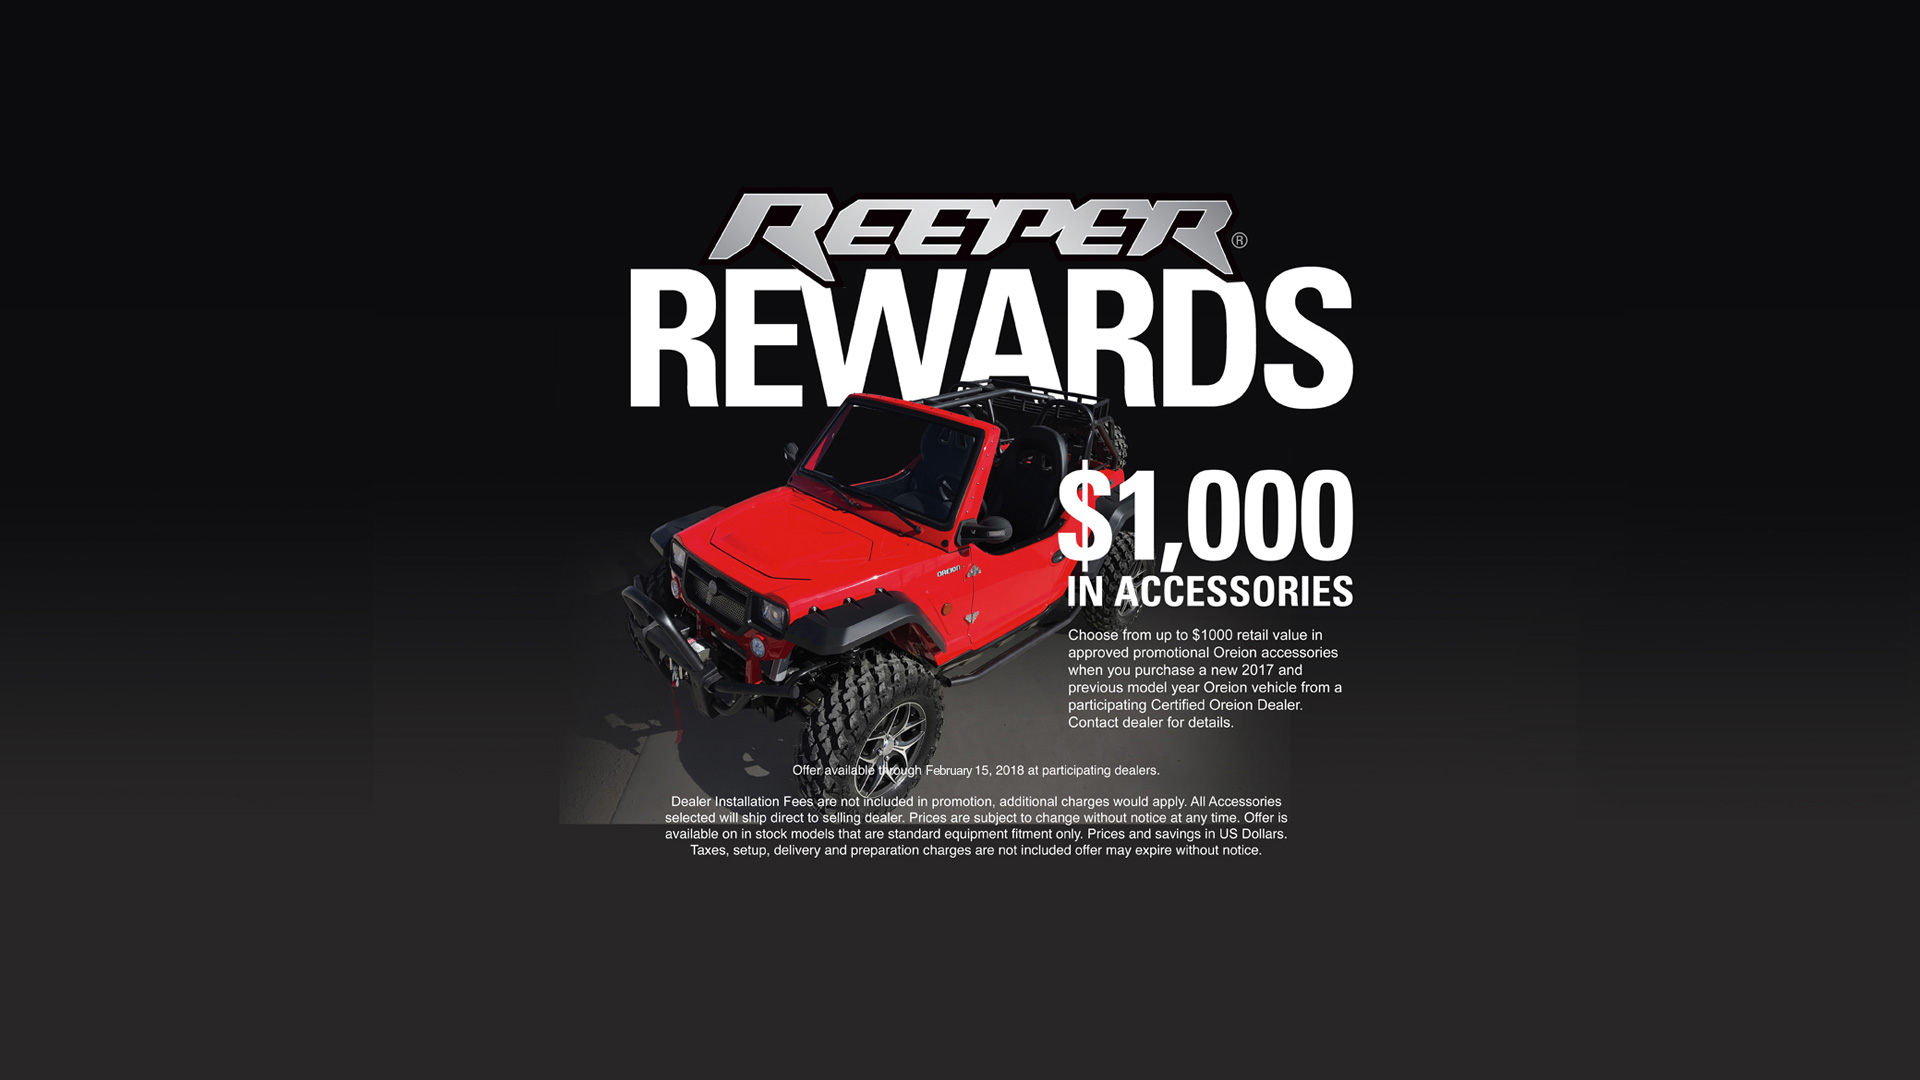 reeper-rewards-through-feb-15-2018